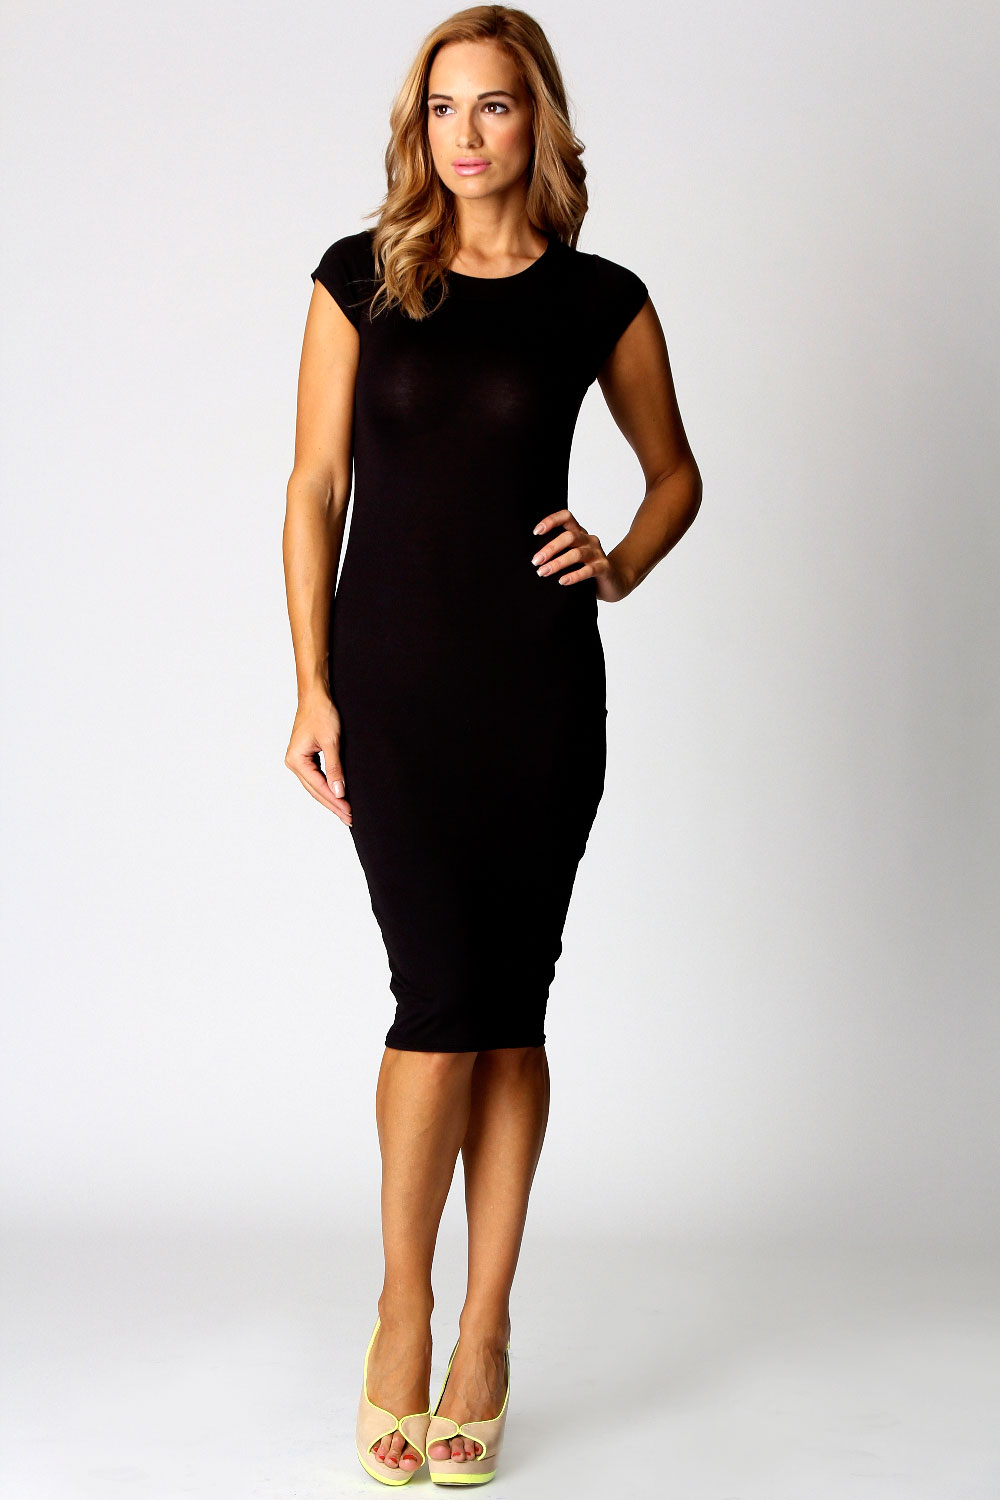 Popular Dresses Black Bodycon Midi Dress Black Cut Out Bodycon Dress